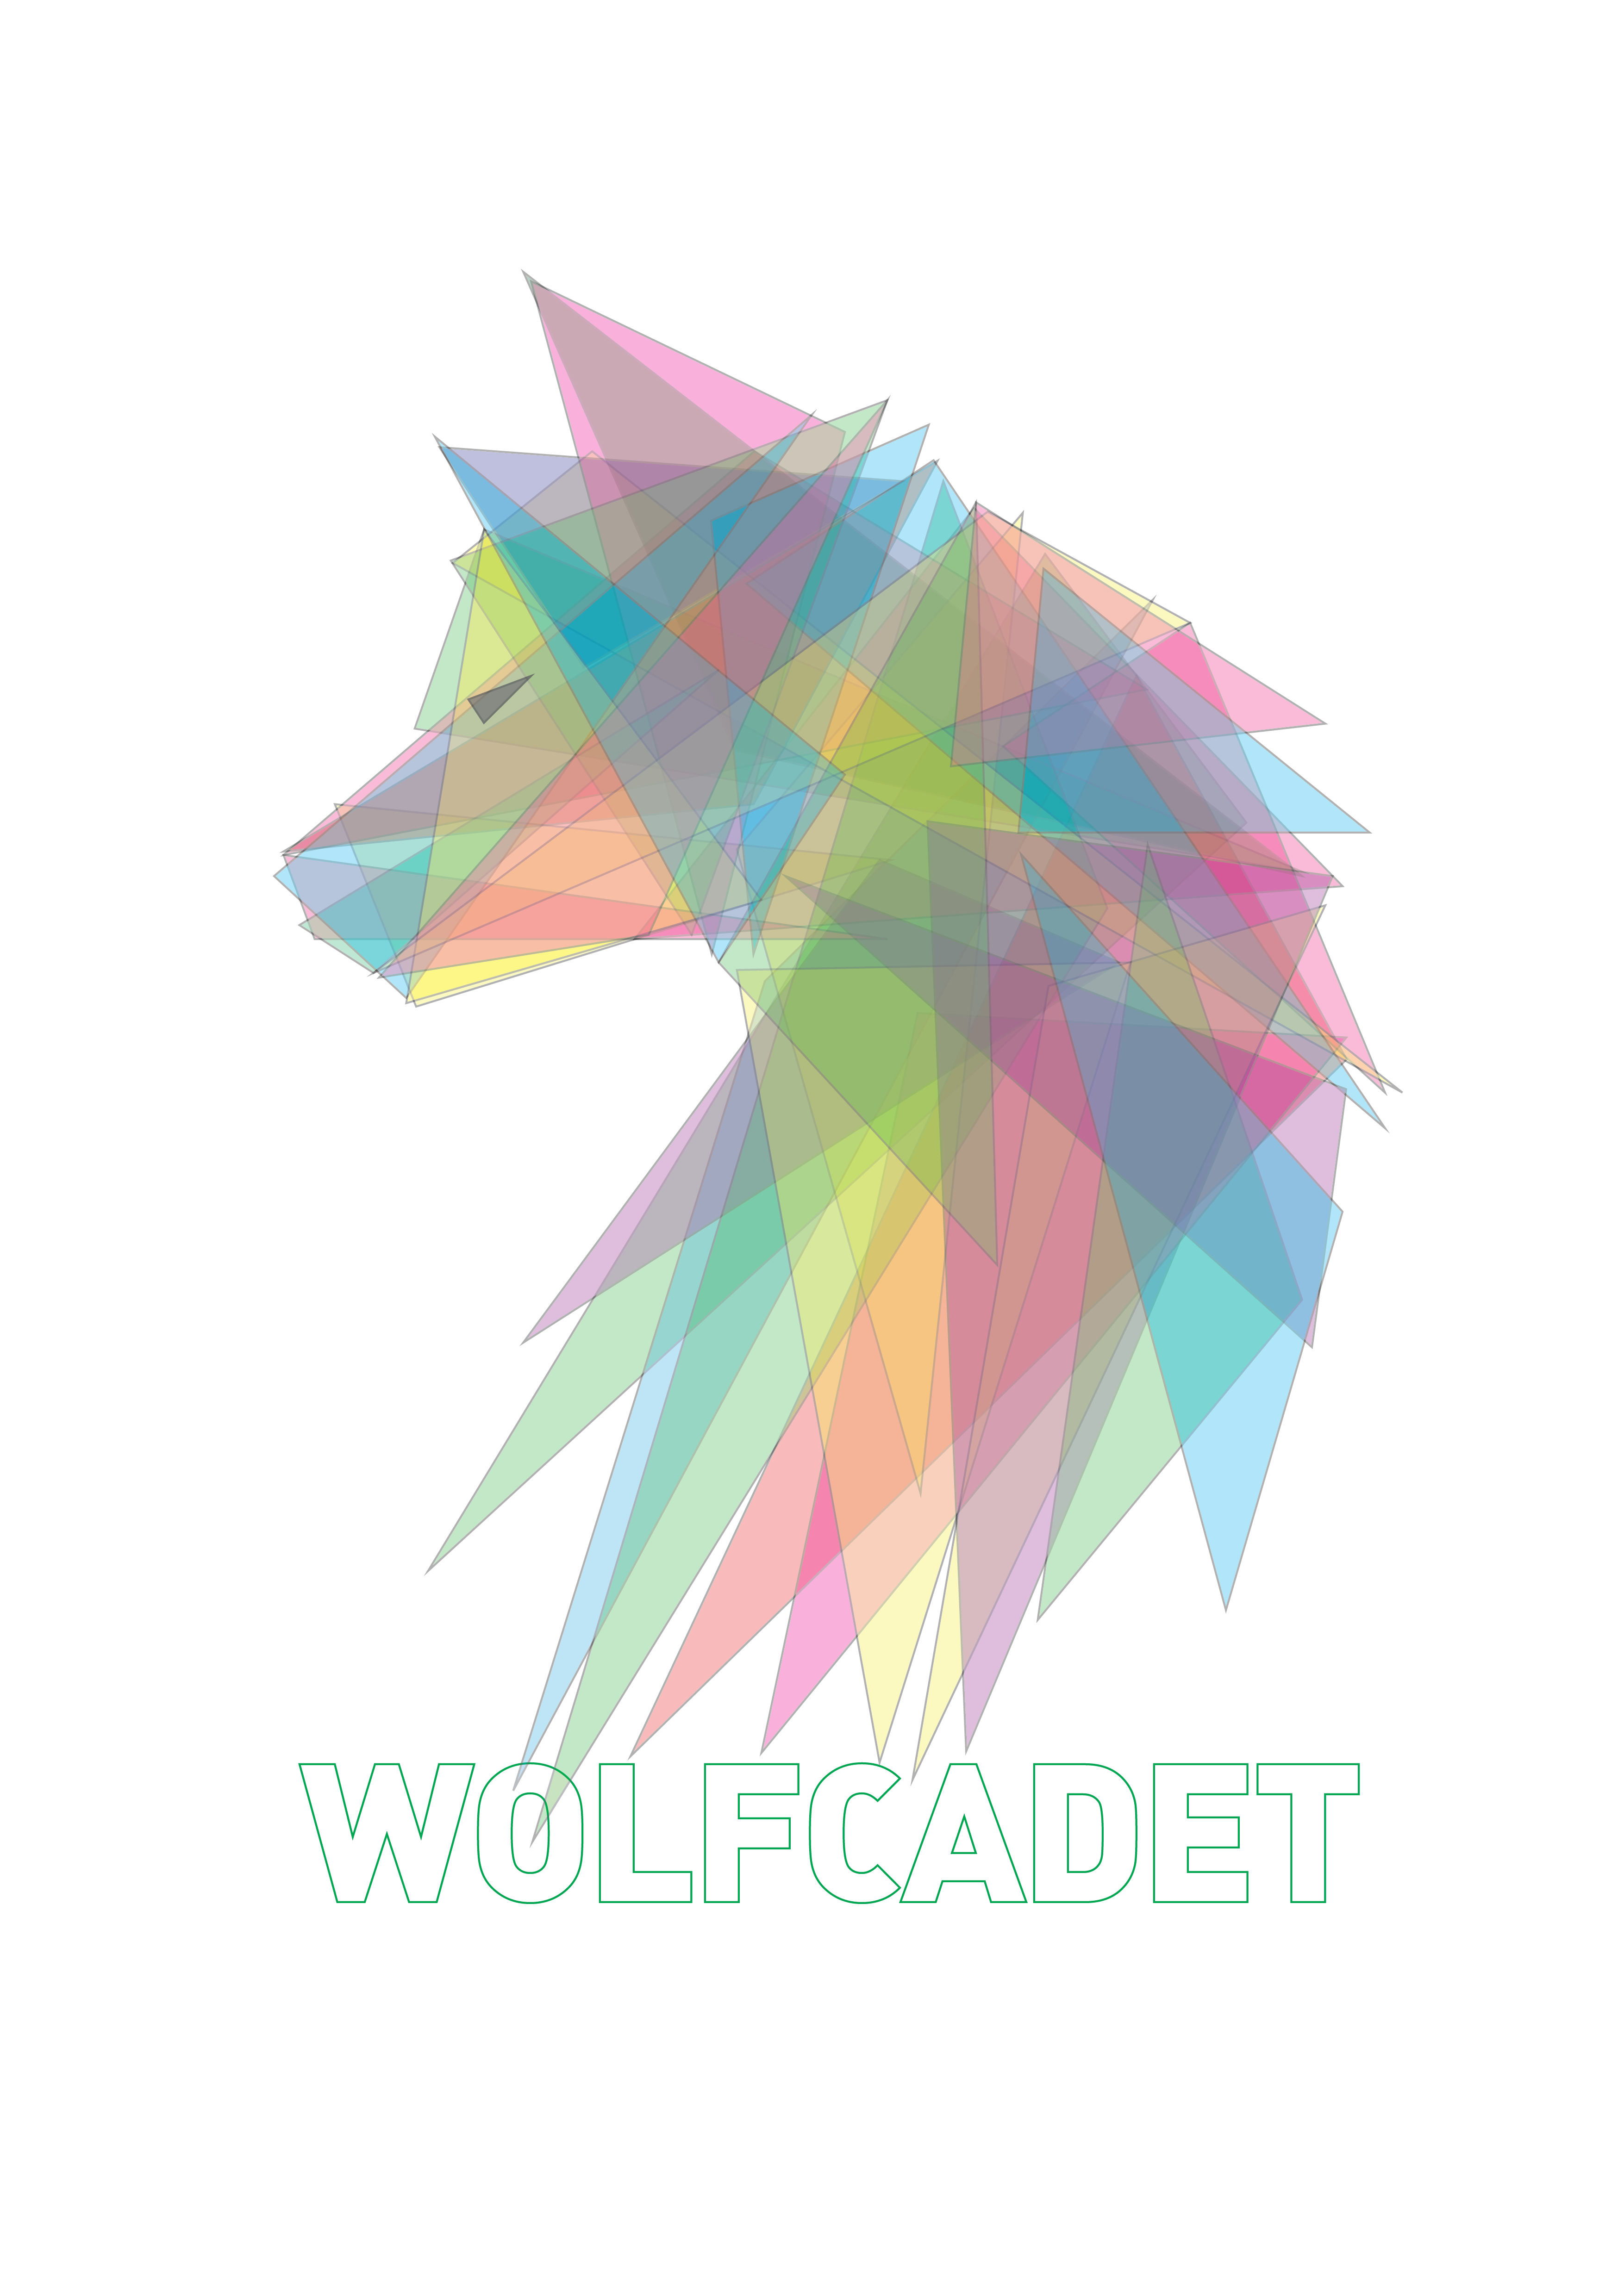 WolfCadet Alternative Posters